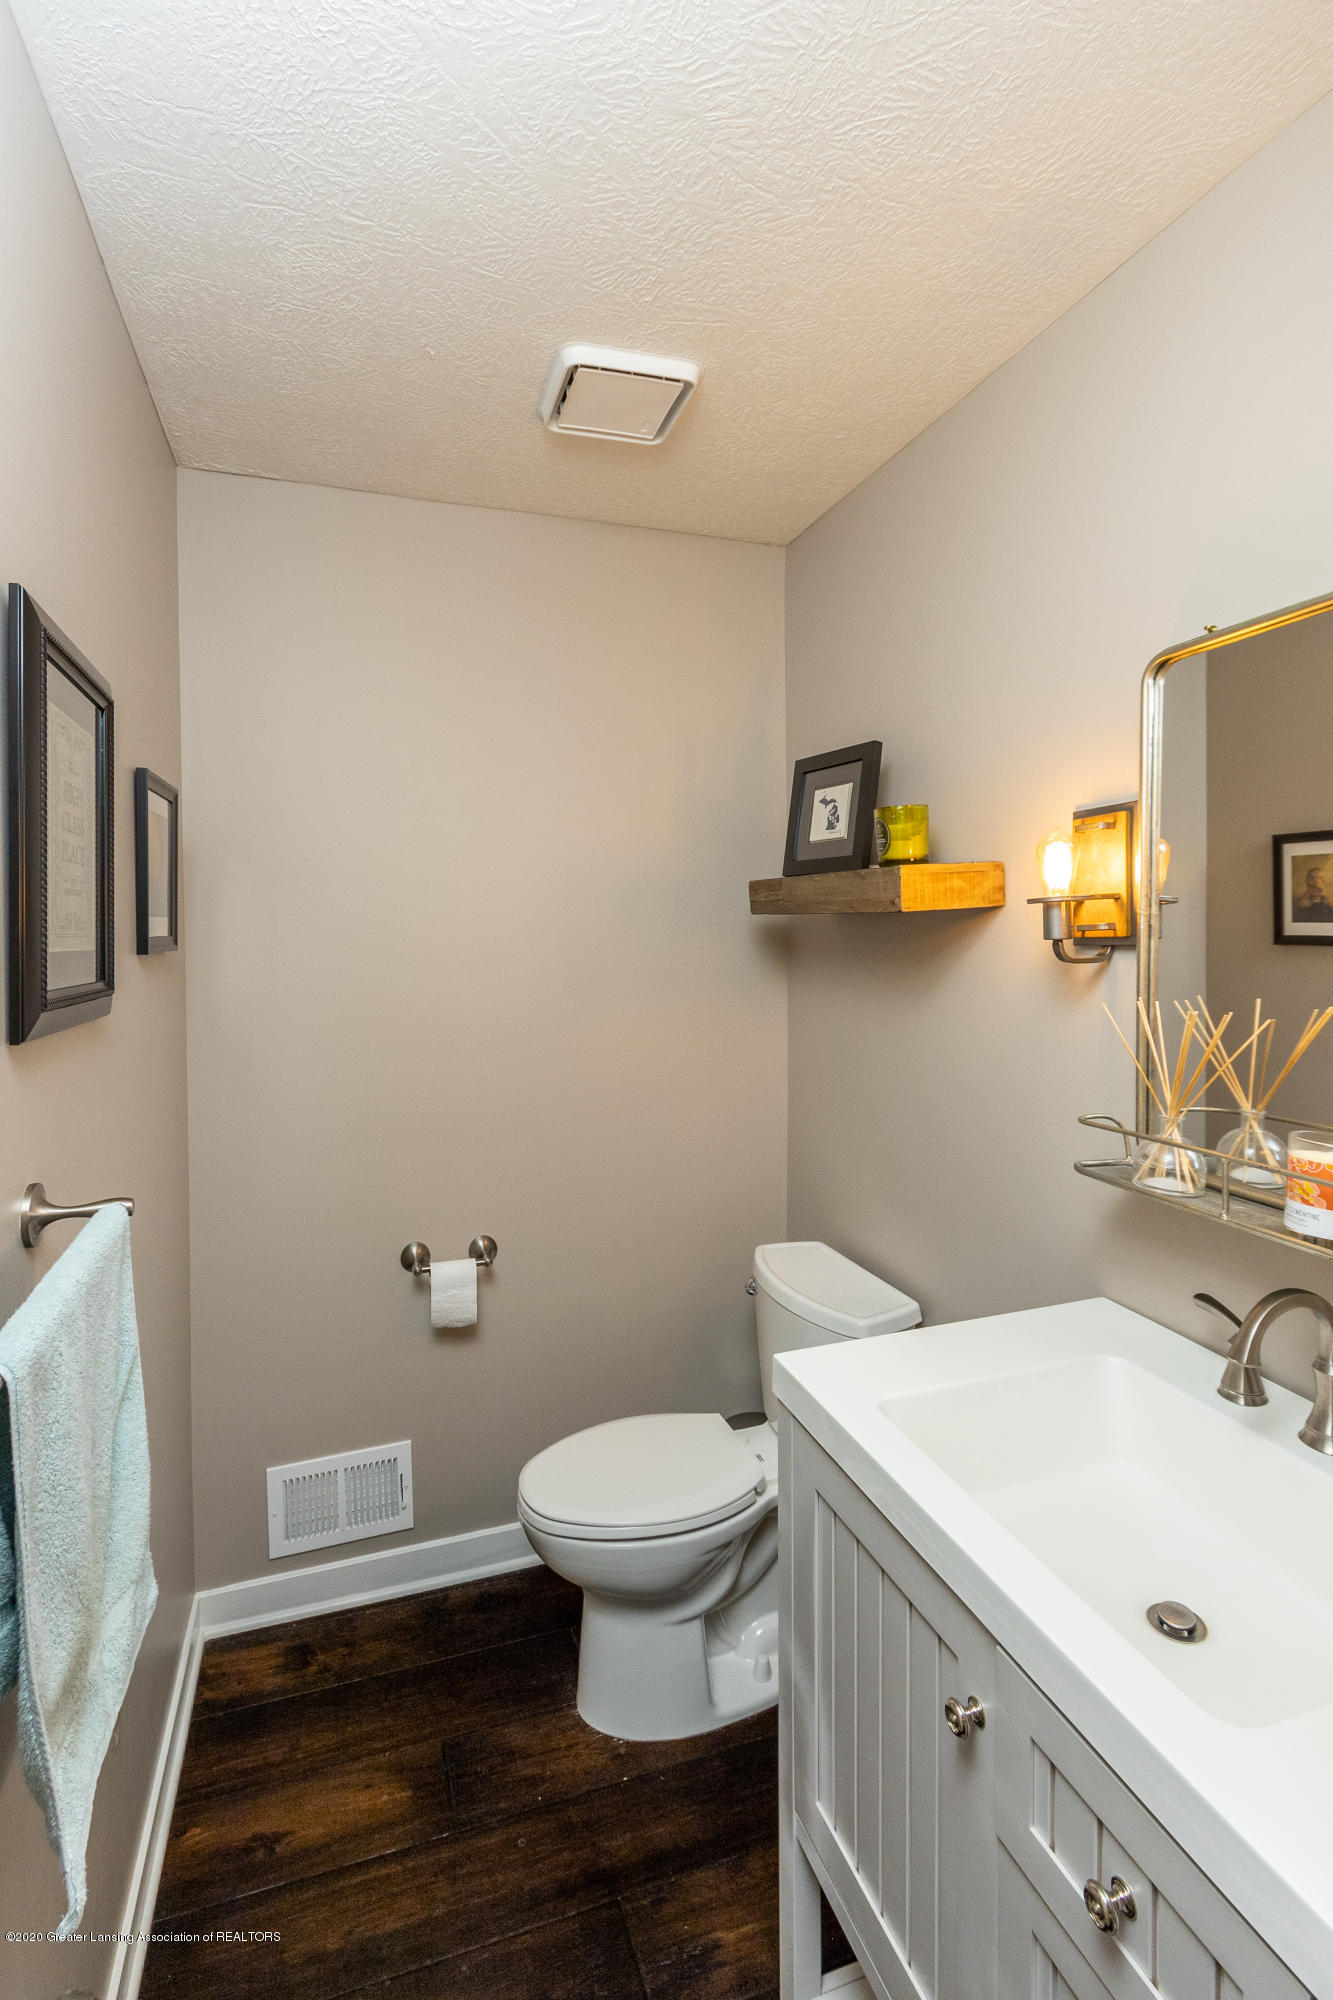 3668 Fairhills Dr - Bathroom - 49